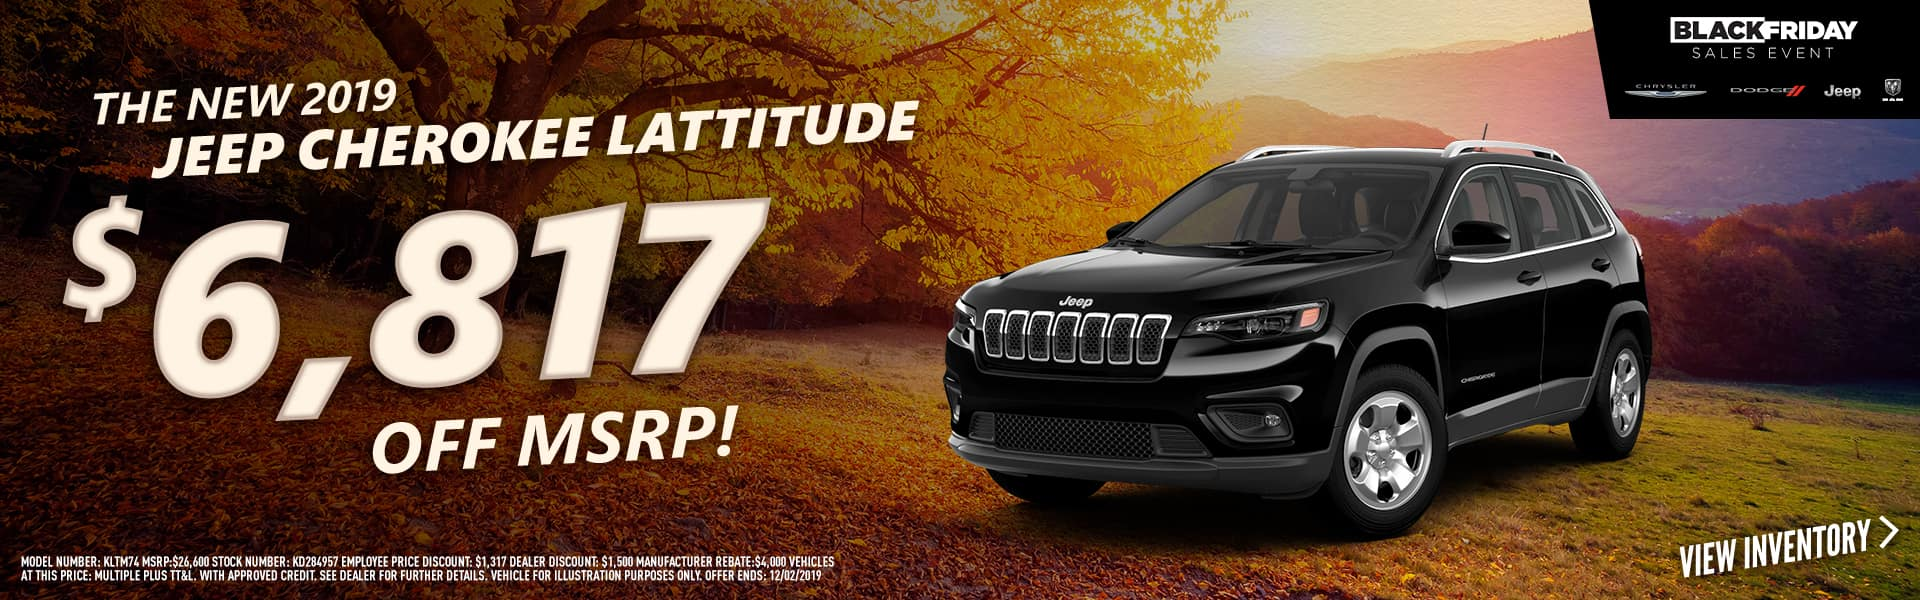 2019 Jeep Cherokee Lattitude $6,817 OFF MSRP